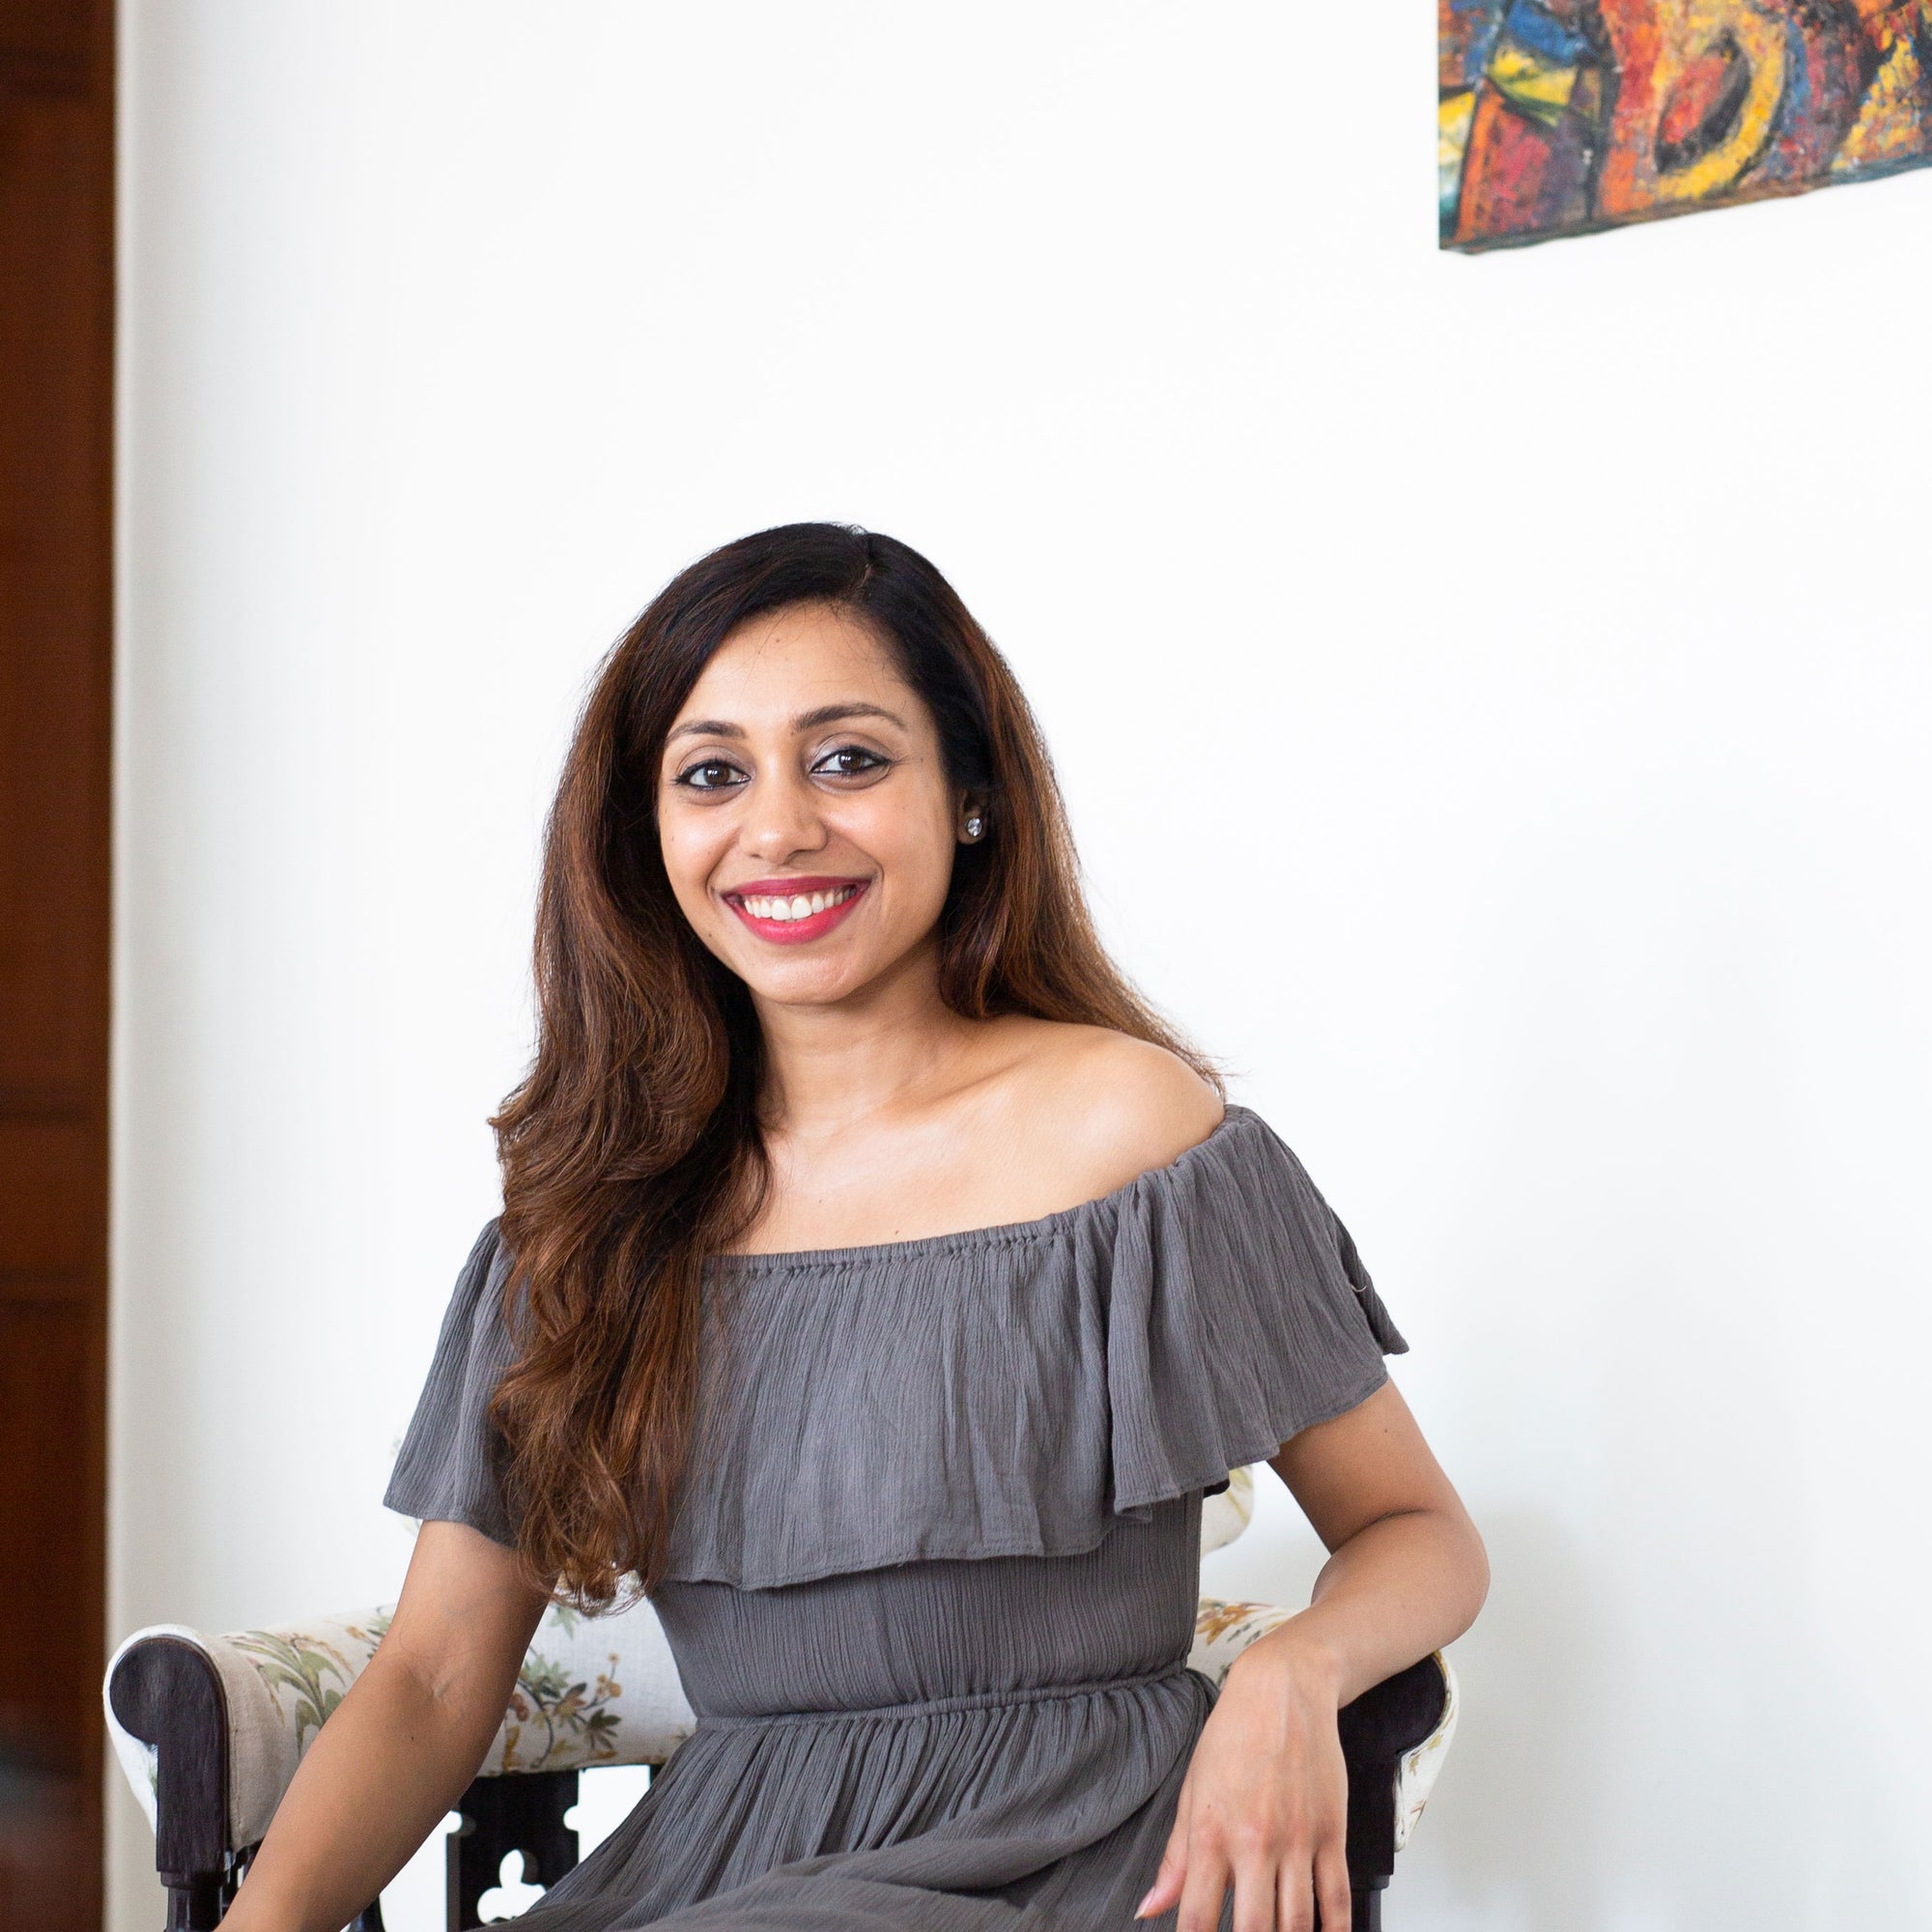 Arture Pockets : Our customer, Anjanakshi shares her experience